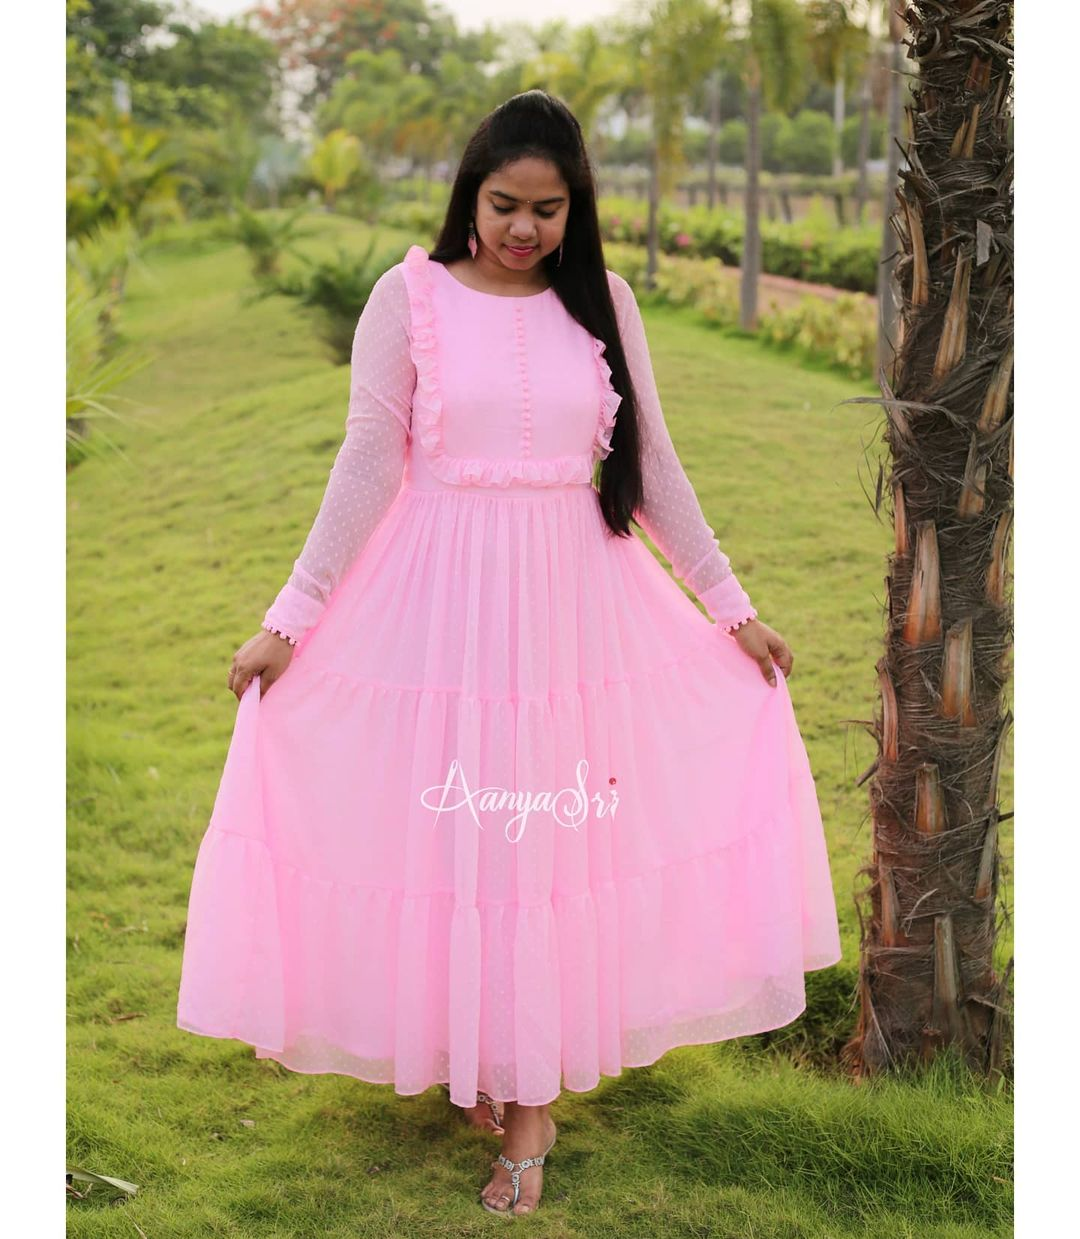 Candy Pink layered ankle length frock with ruffle & potlis detailing on the yoke . Comes with full sleeves and potlis on the sleeves and boat neck. Candy Pink. Price : RS. 2600. 2021-06-22